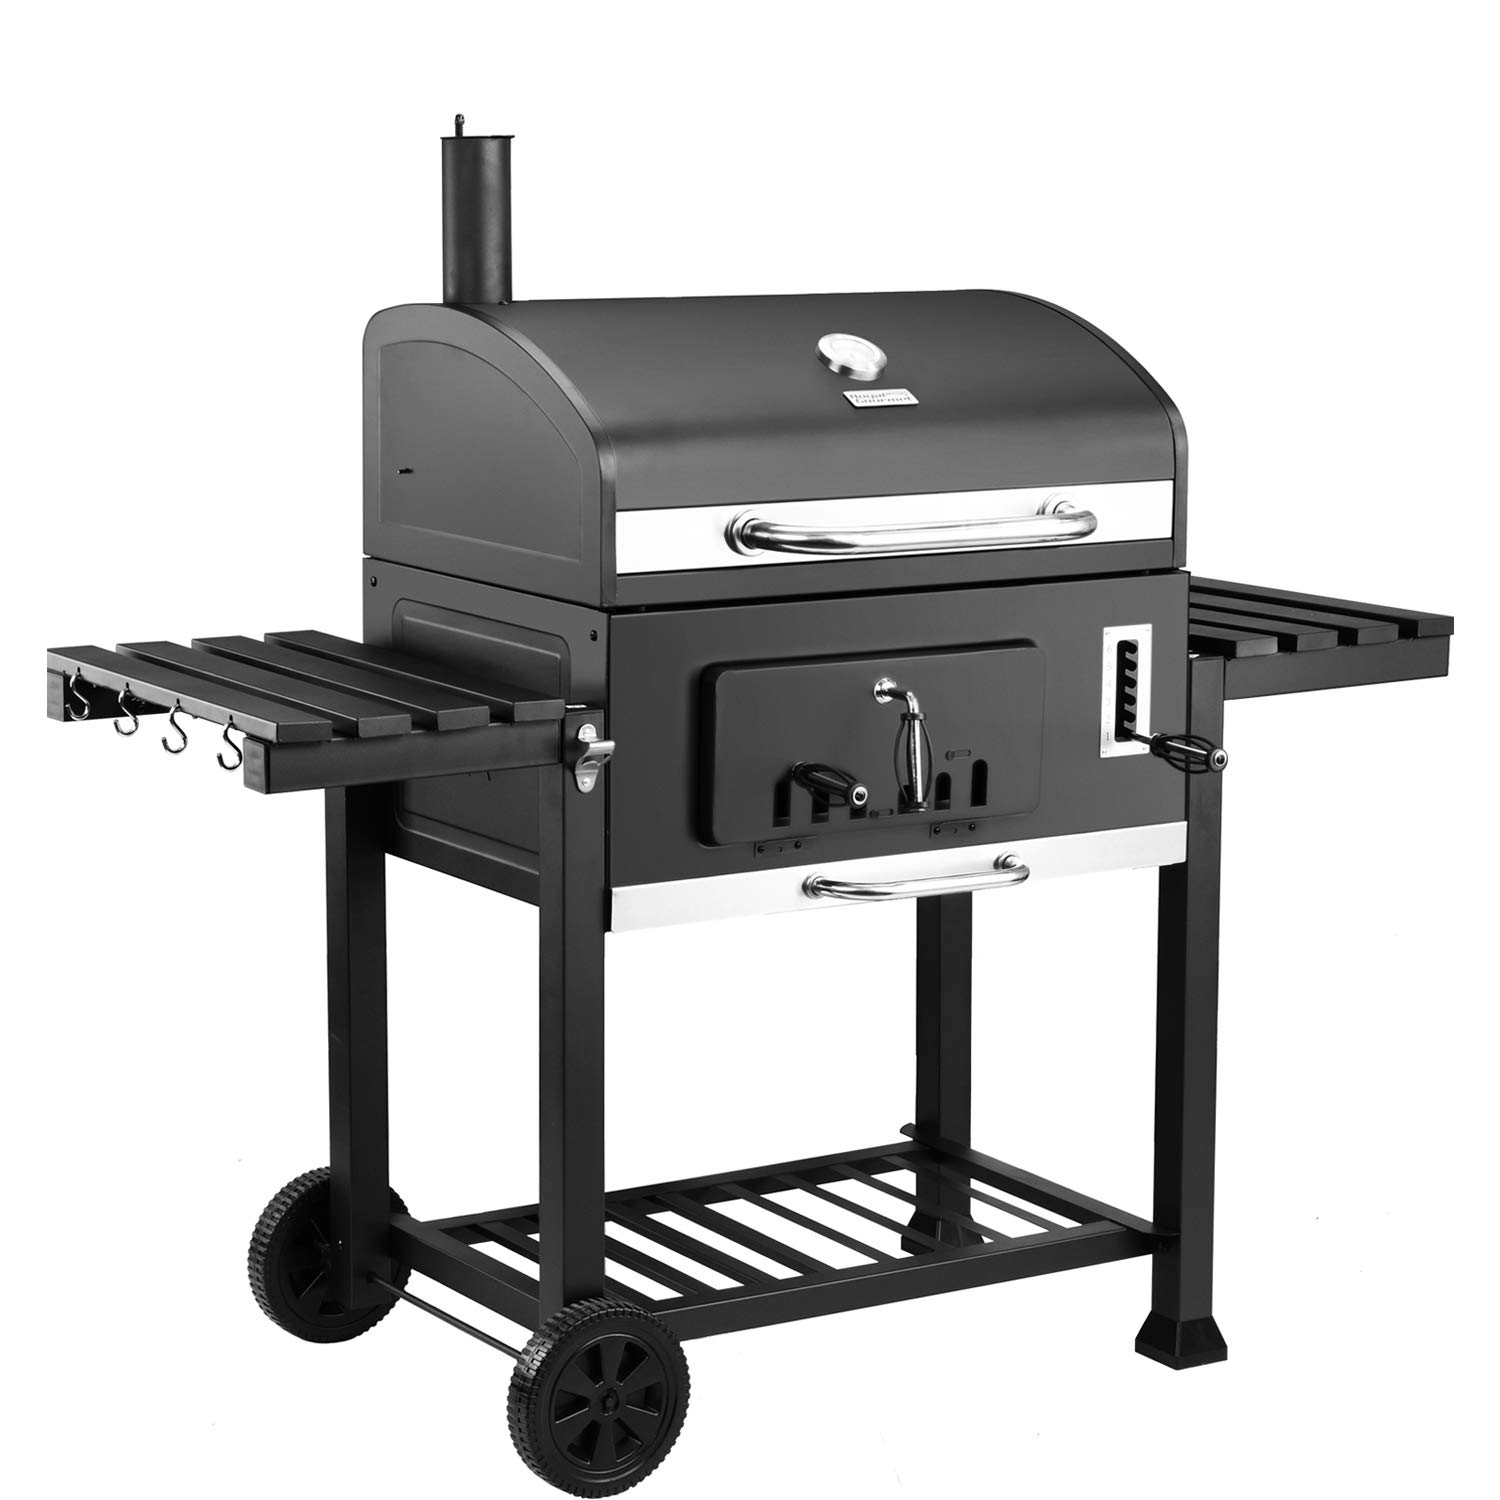 Royal Gourmet 30'' Charcoal Grill Large CD2030, Outdoor Barbeque, Backyard Cooking, Black